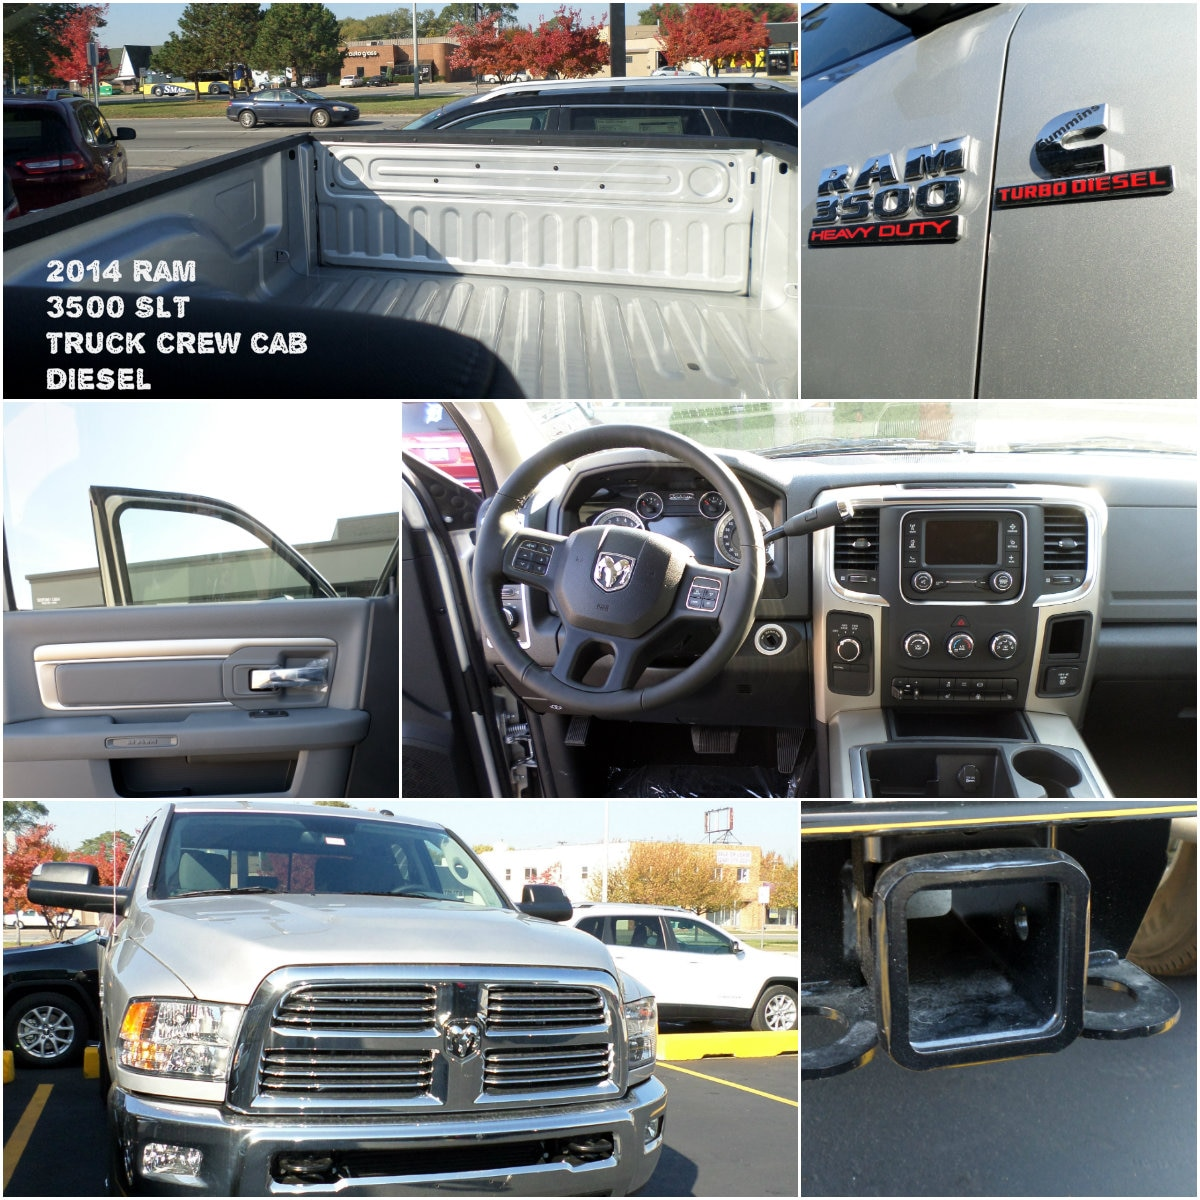 Exciting Facts About The 2014 Ram Heavy Duty 3500 All Cummins Turbo 2013 Dodge Diesel Fuel Filter 67l